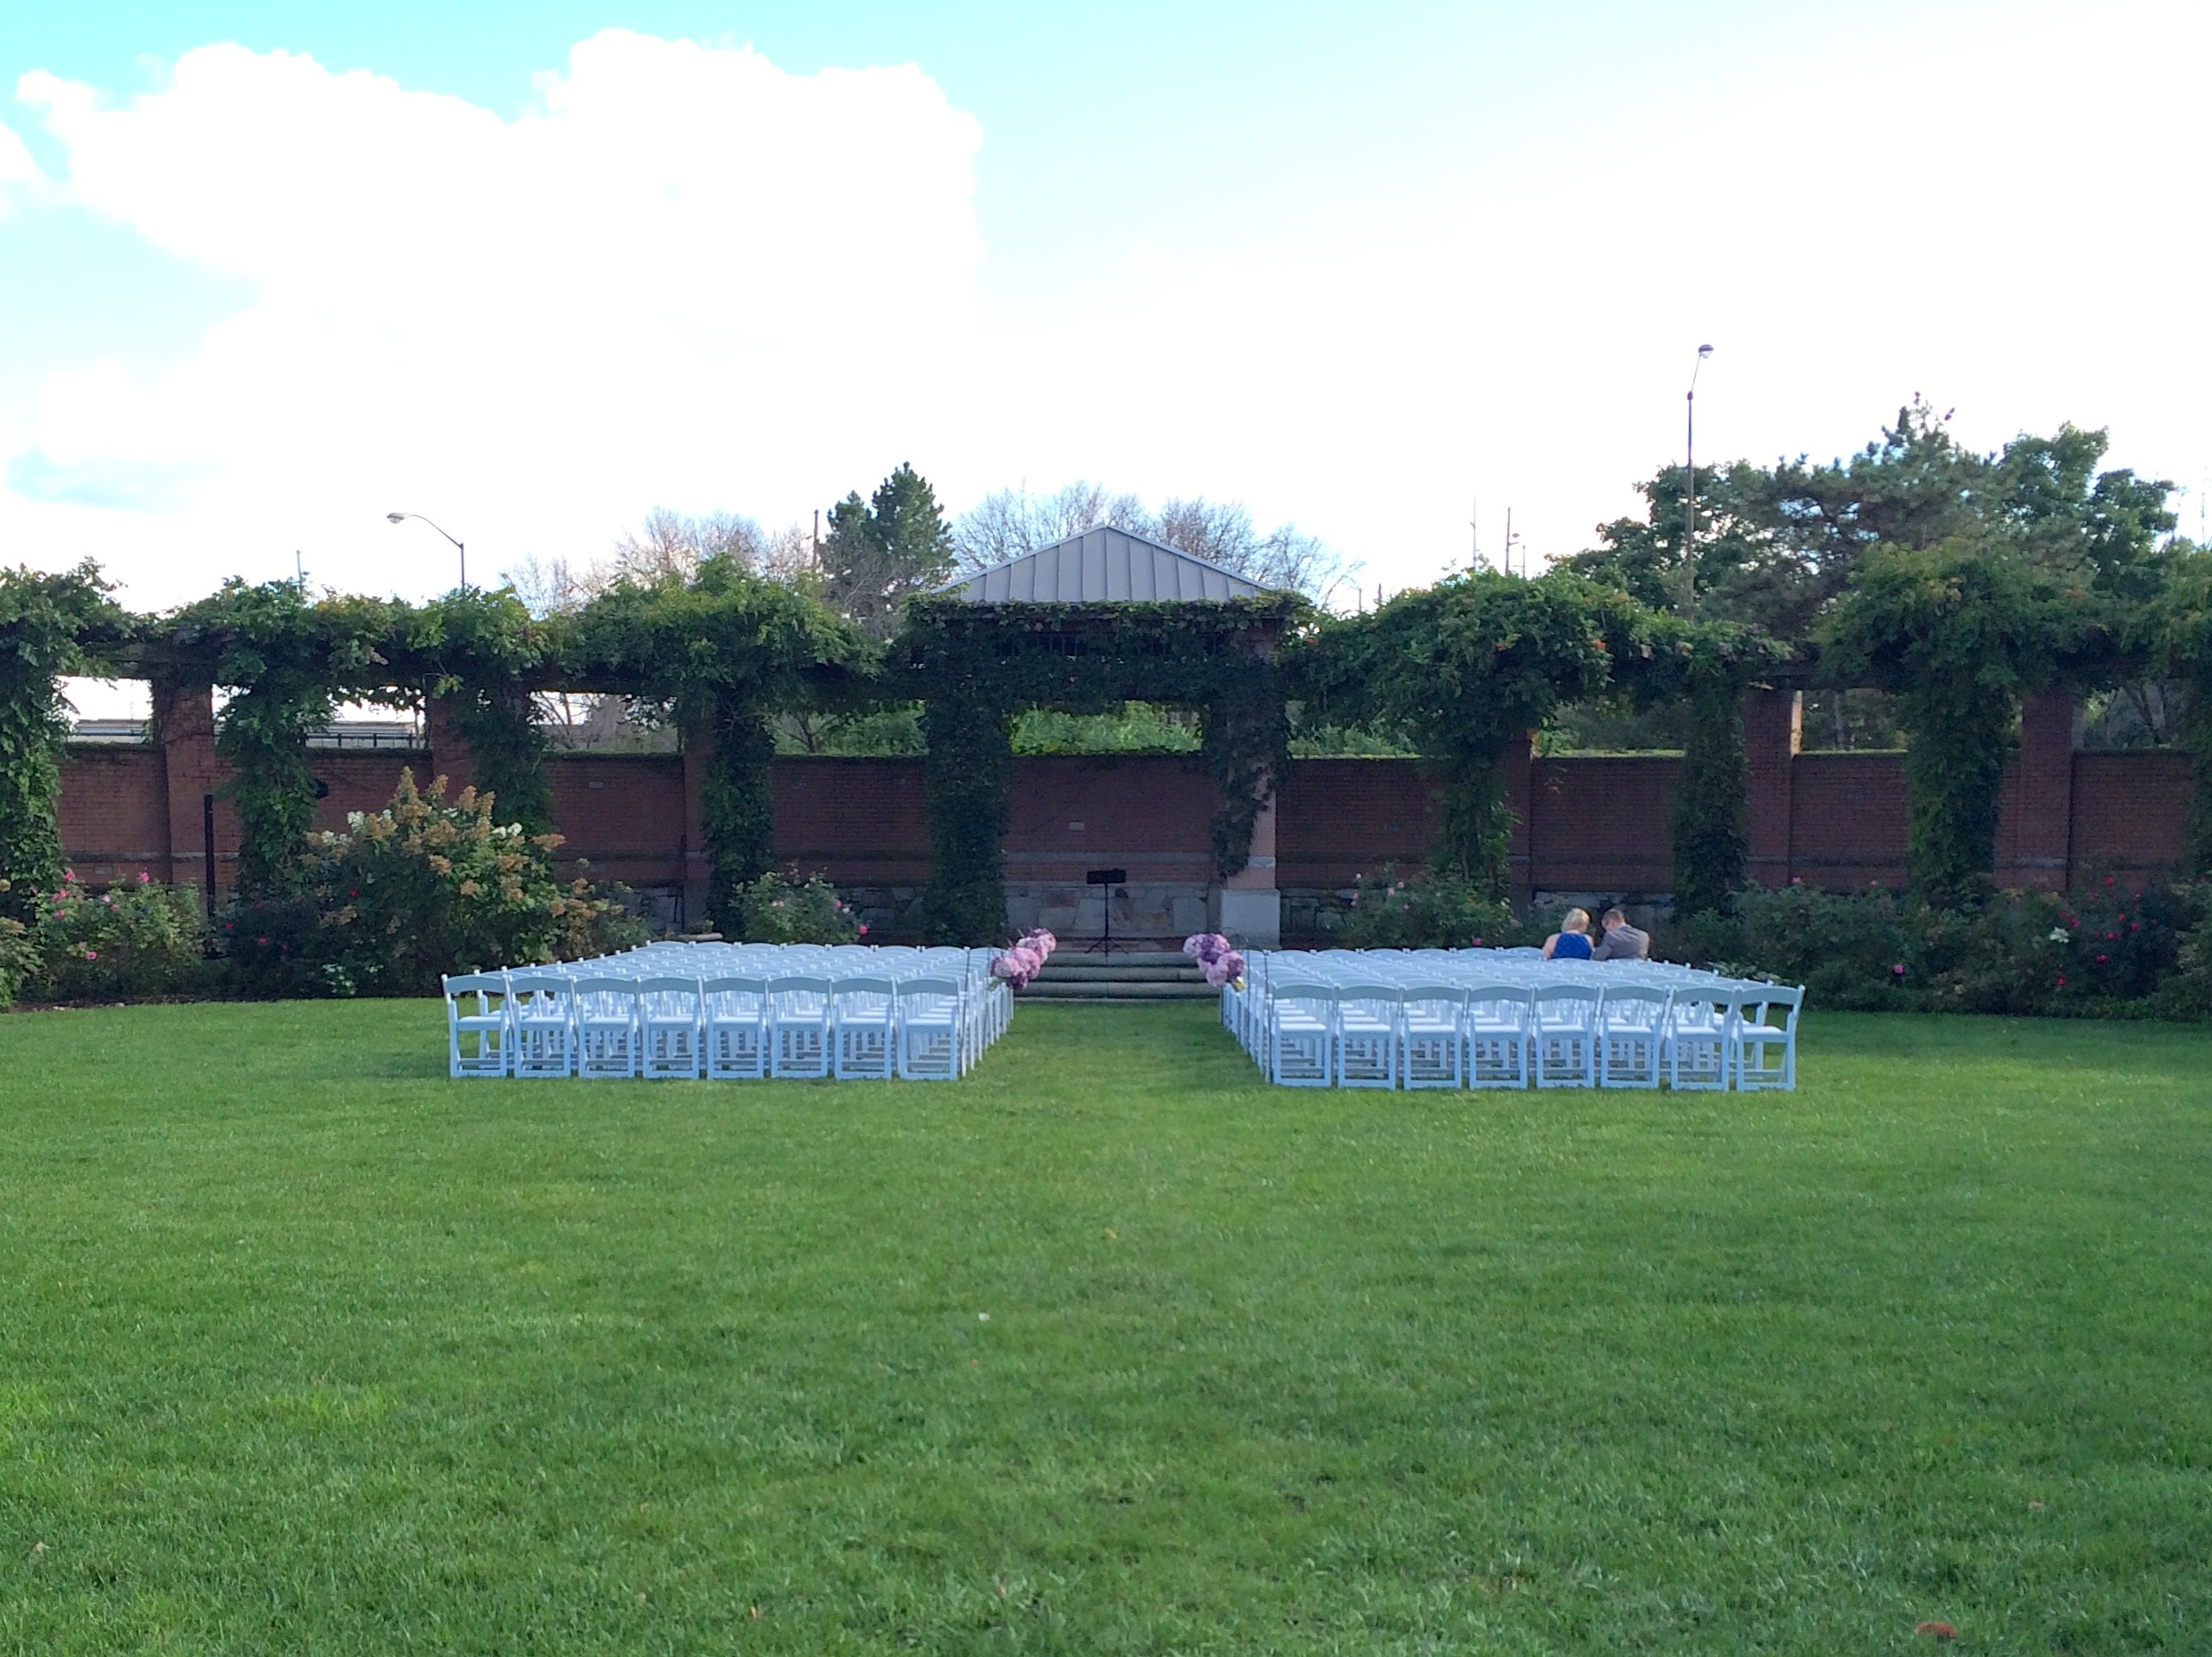 Indianapolis Zoo Efroymson Wedding Garde n set for Jenae & Chad - the rain stopped, the clouds parted and the sun shone!